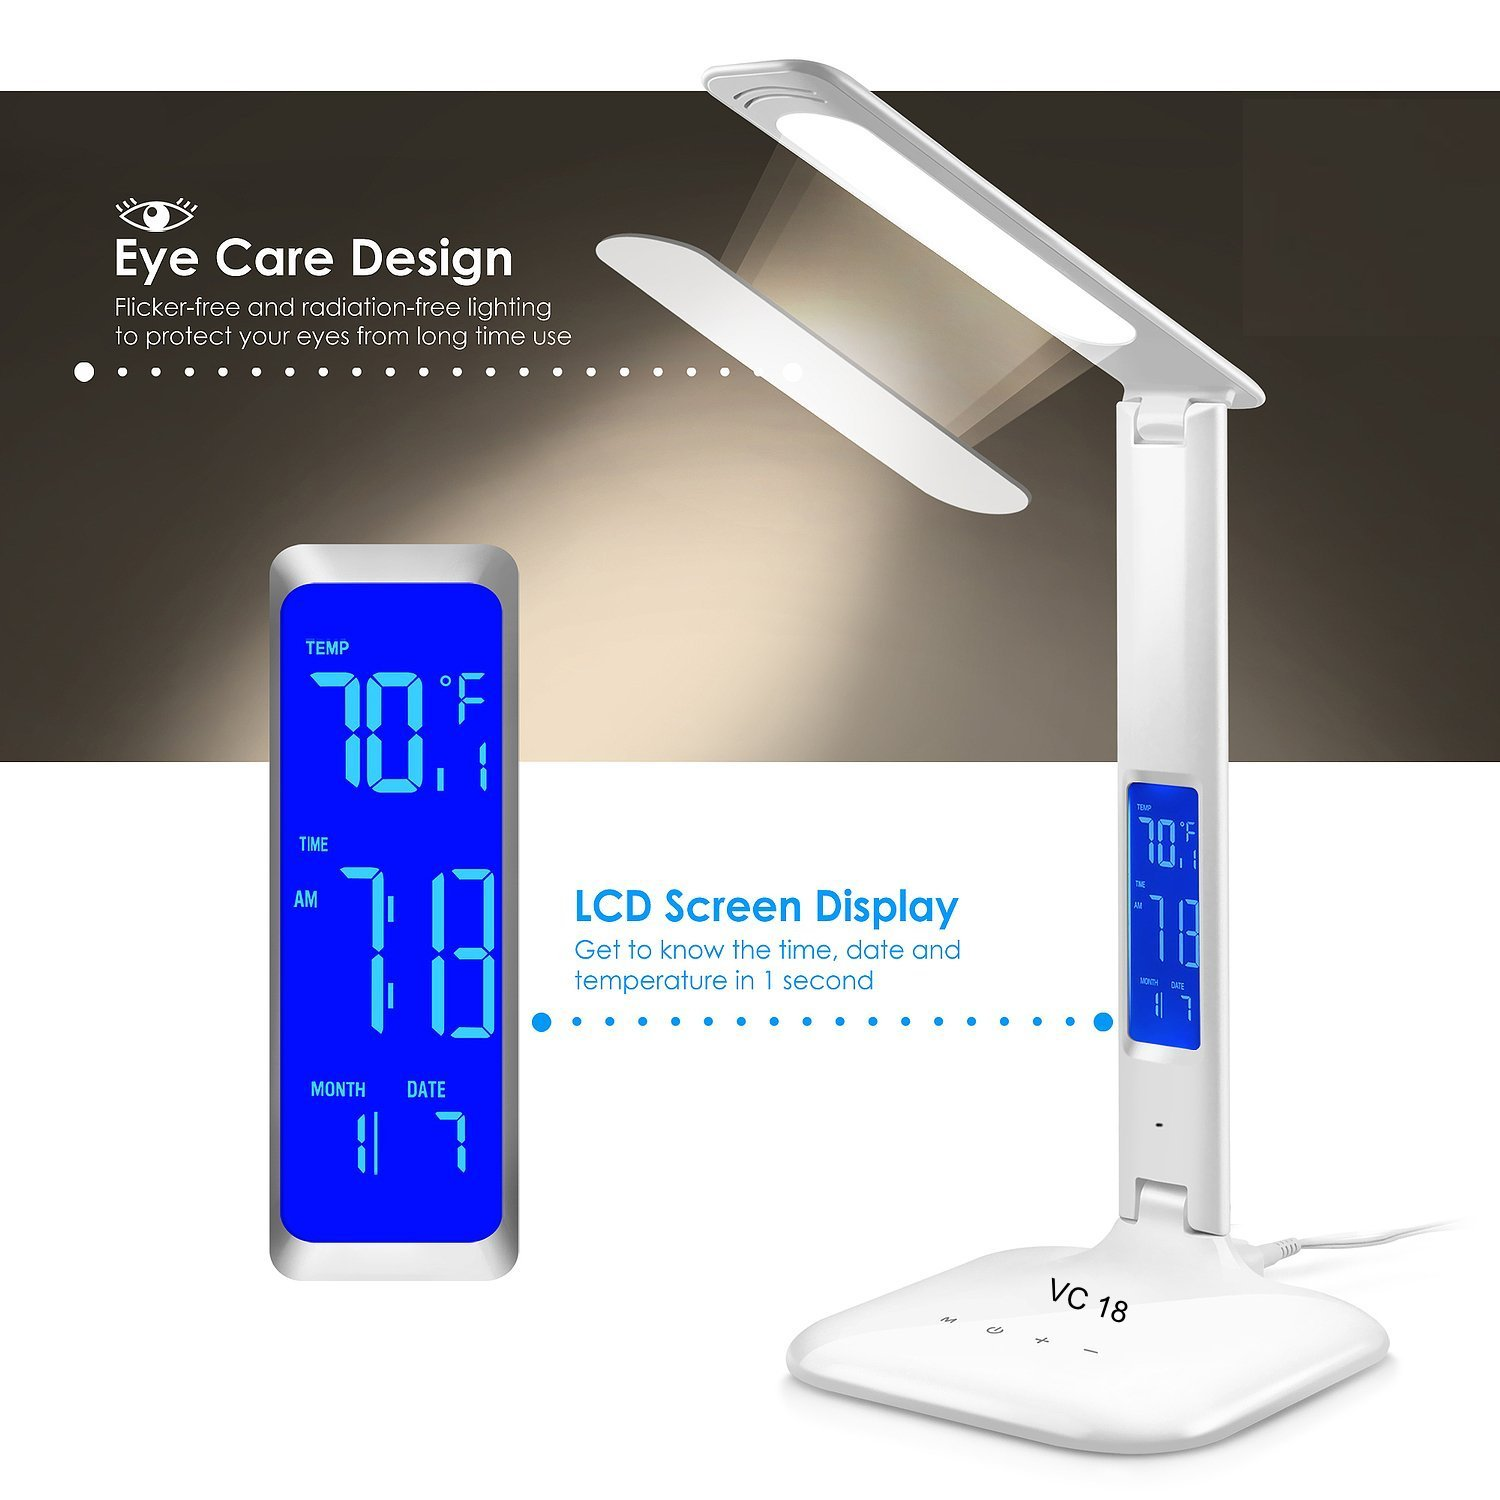 Smart WiFi Alexa Google Assistant Control LED Desk Lamp with Eye Caring Reading Light, 3 Lighting Mode, 5-Level Dimmer, Touch Control, Built-in Clock, Calendar, Thermometer by 3A Nue (Image #5)